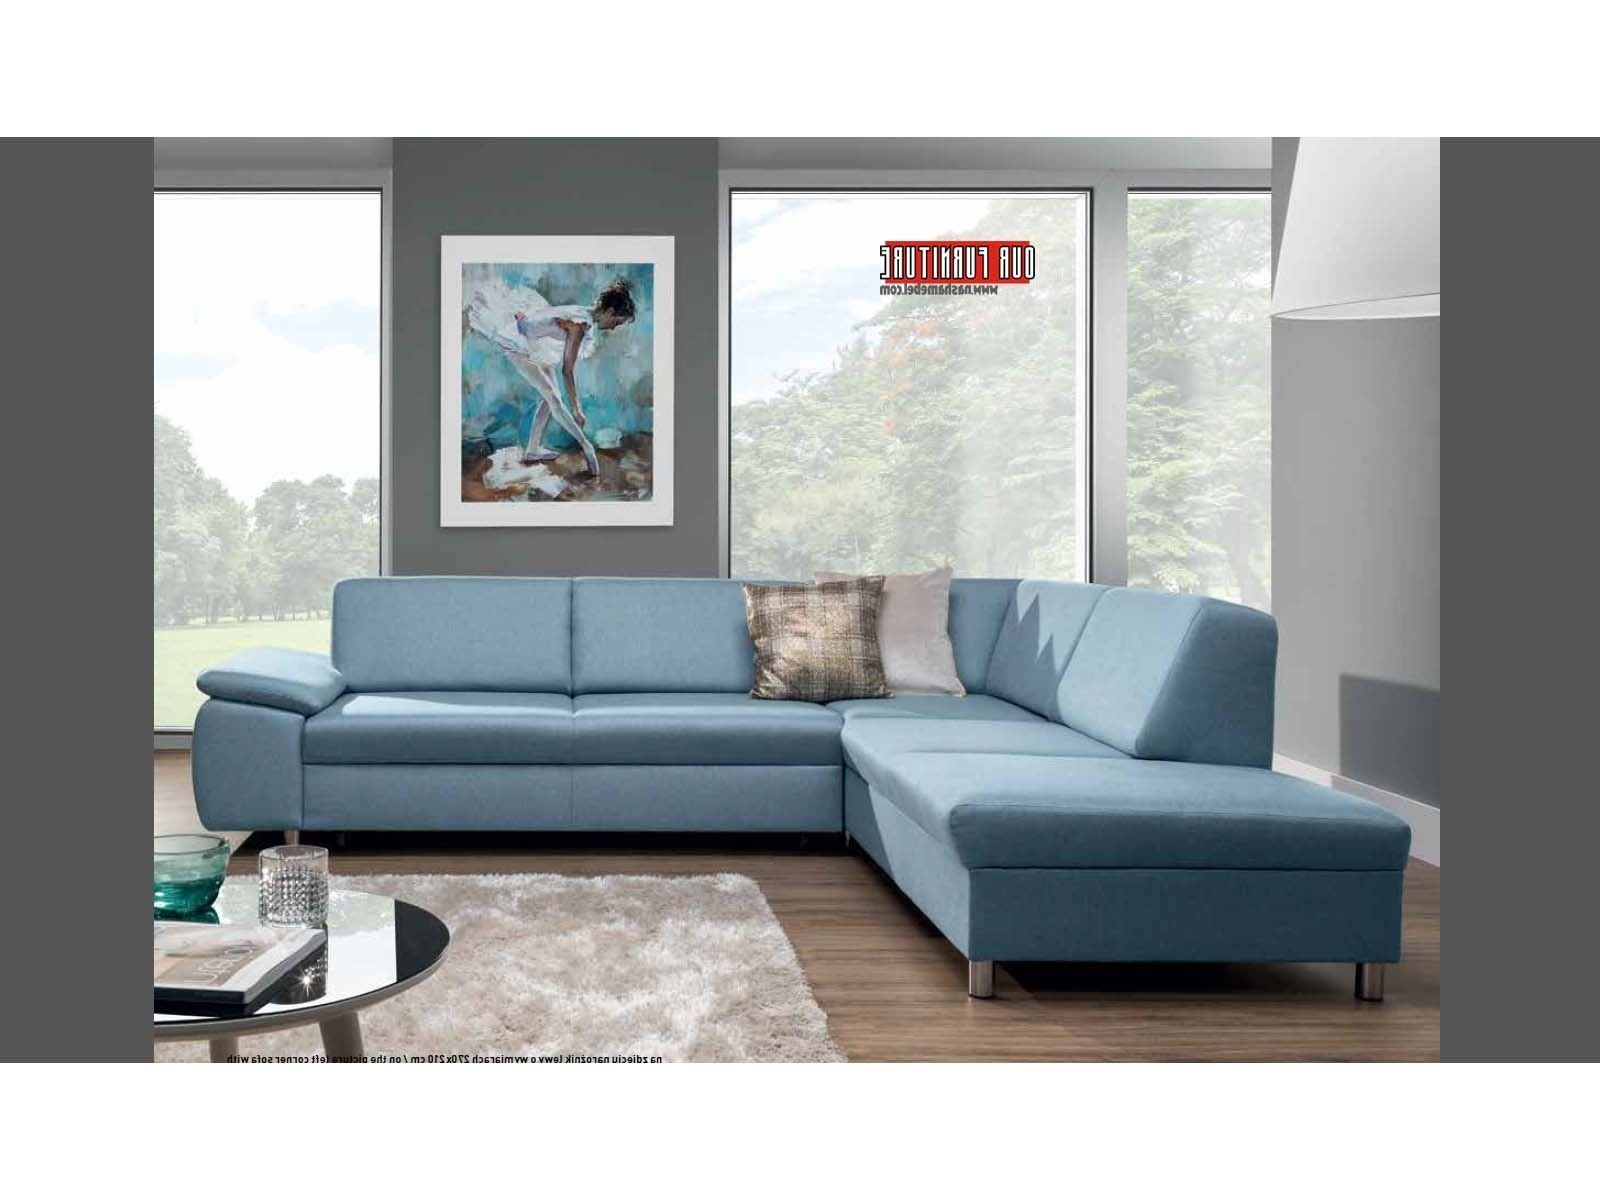 Niagara Sectional Sofas Regarding Most Current Niagara(St)Sectional Sofa Bed (View 8 of 15)